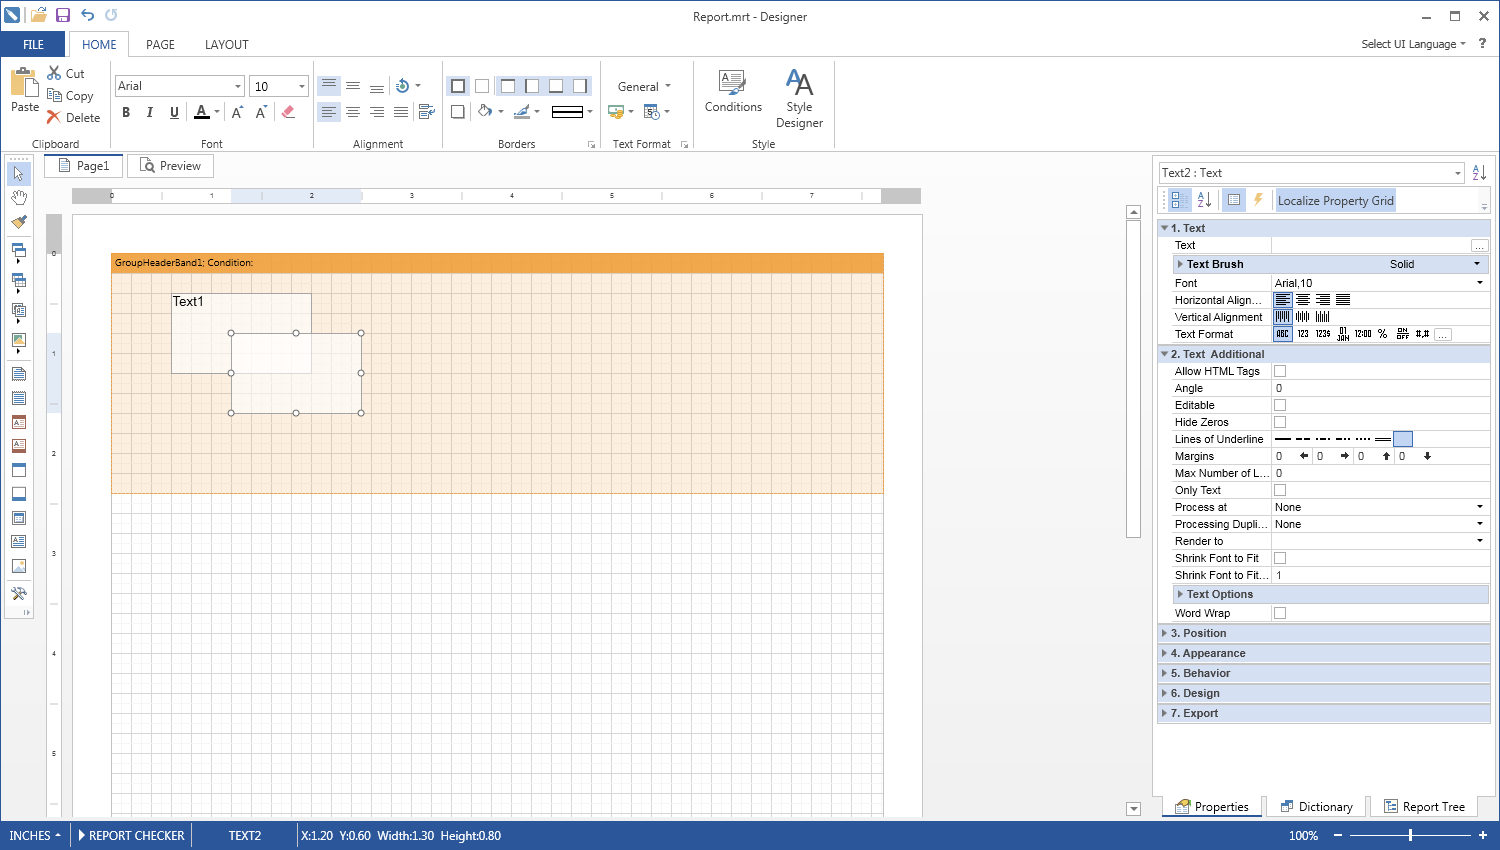 Reporting Tool for WPF  Rich Abilities to Render, View